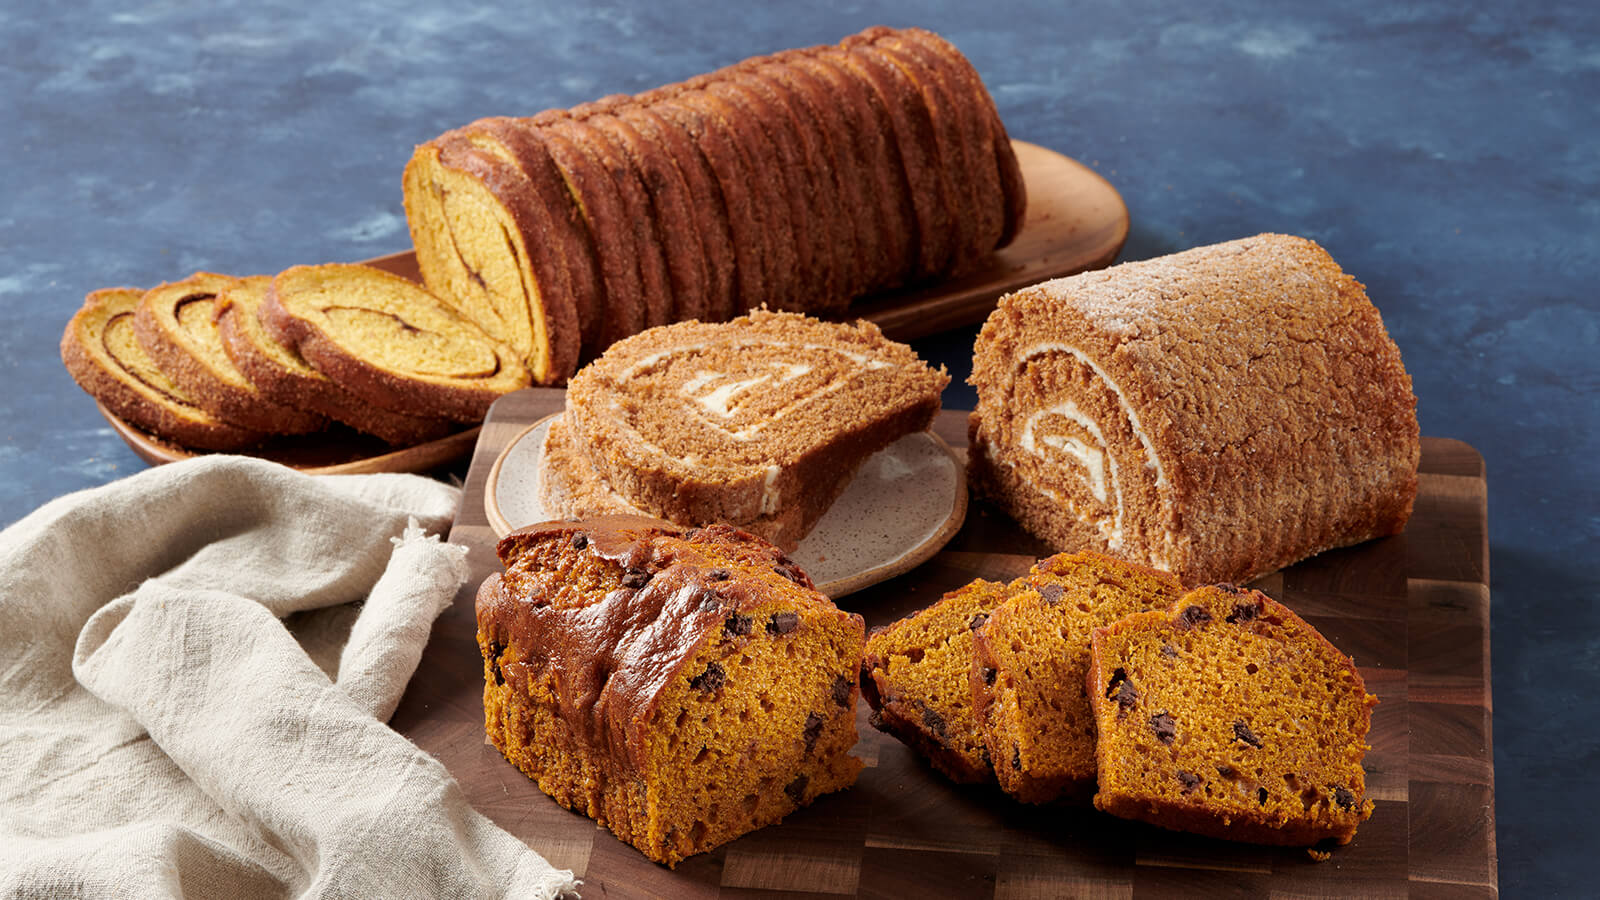 Pumpkin Chocolate Chip Pound Cake, Cake Roll, Nut Cinnamon Sweet Swirl Bread